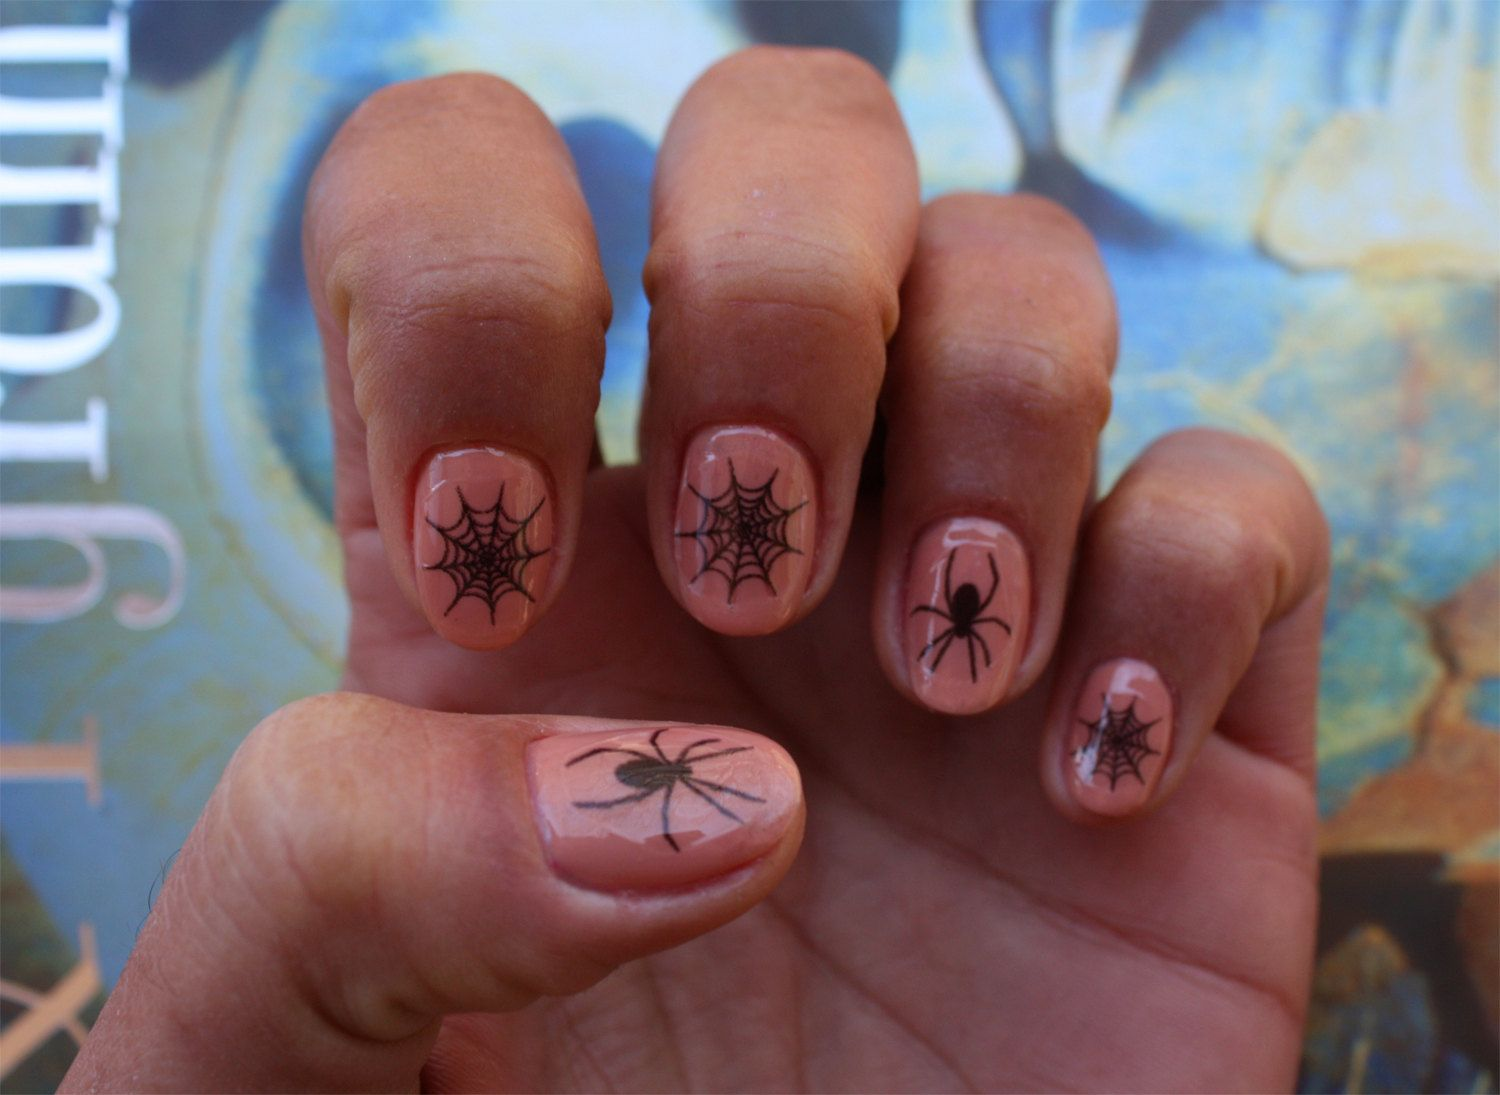 Black Spider and Spider Web Nail Art